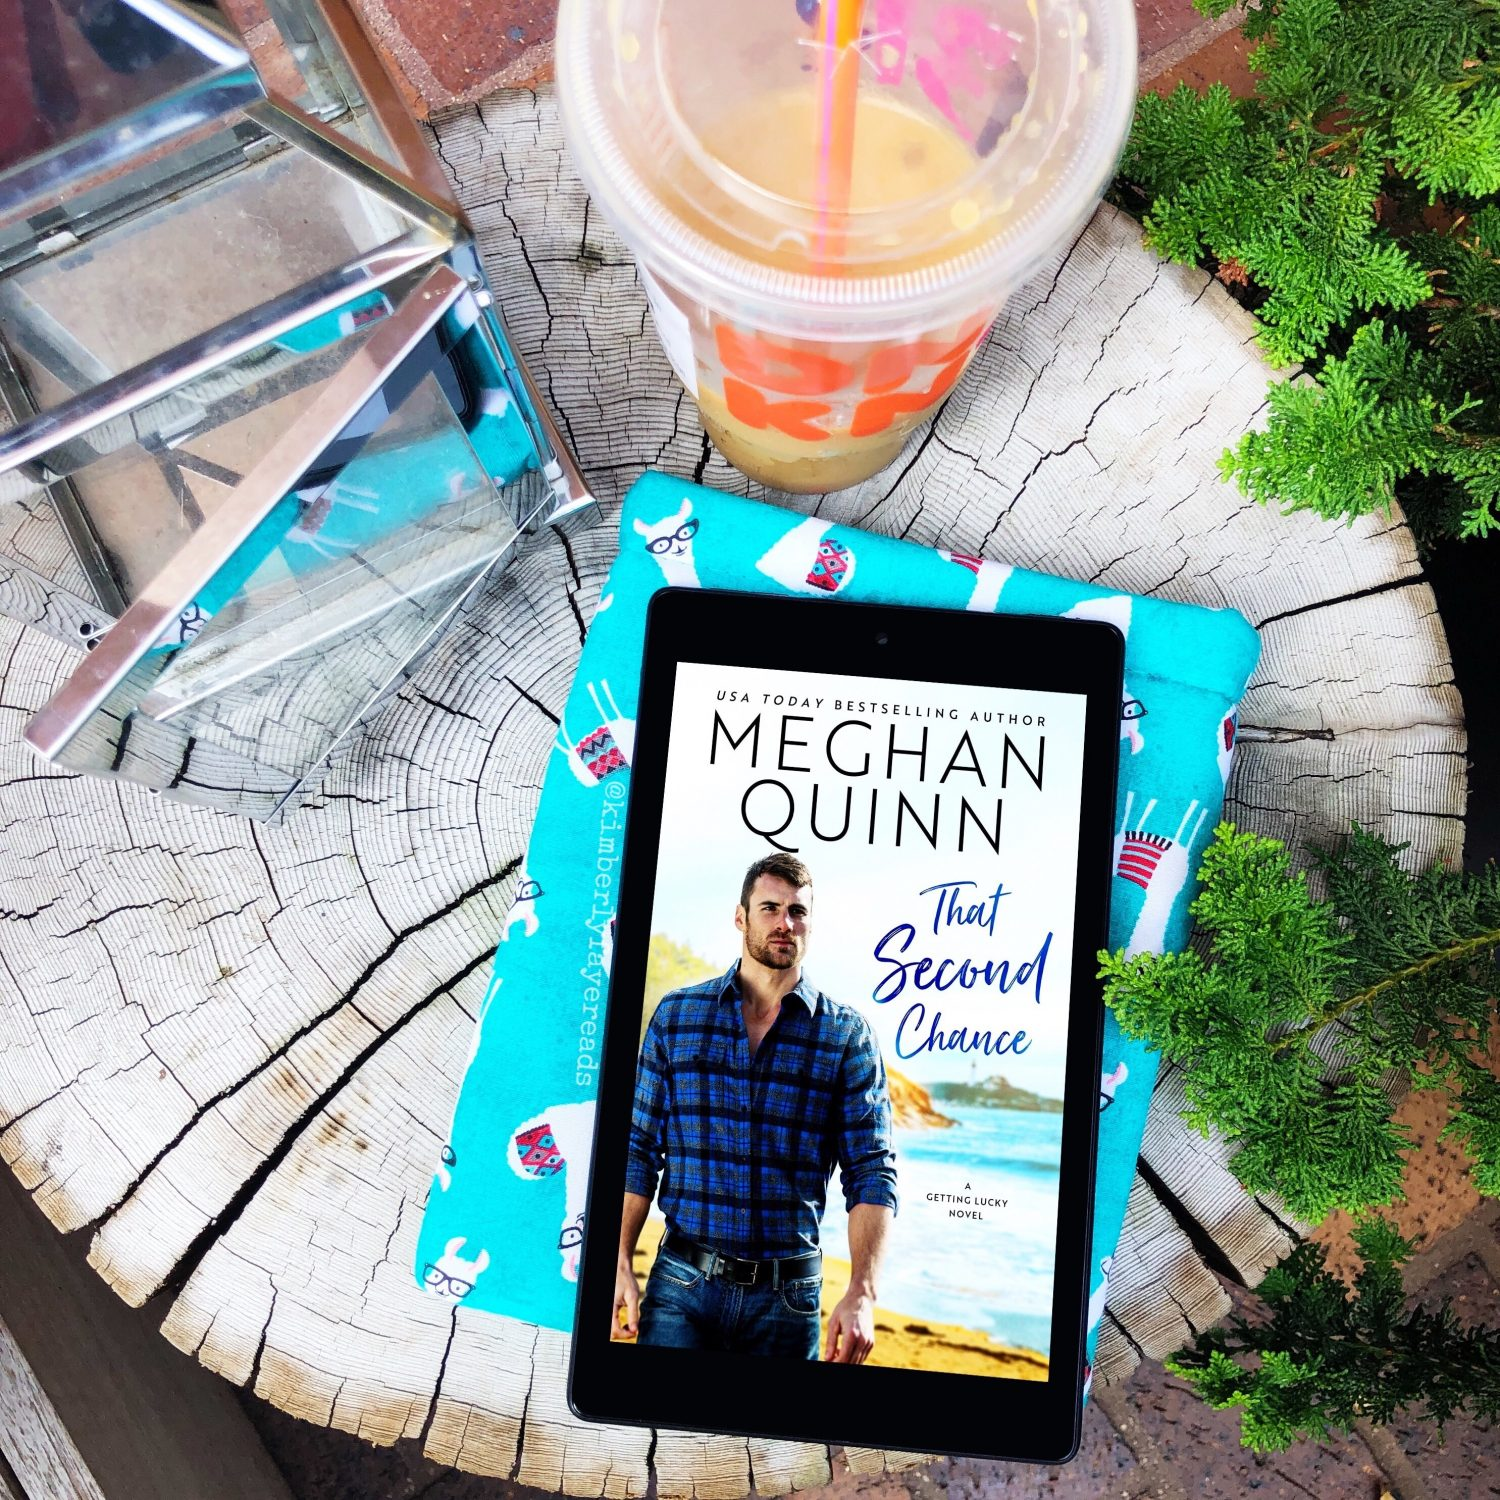 In Review: That Second Chance (Getting Lucky #1) by Meghan Quinn